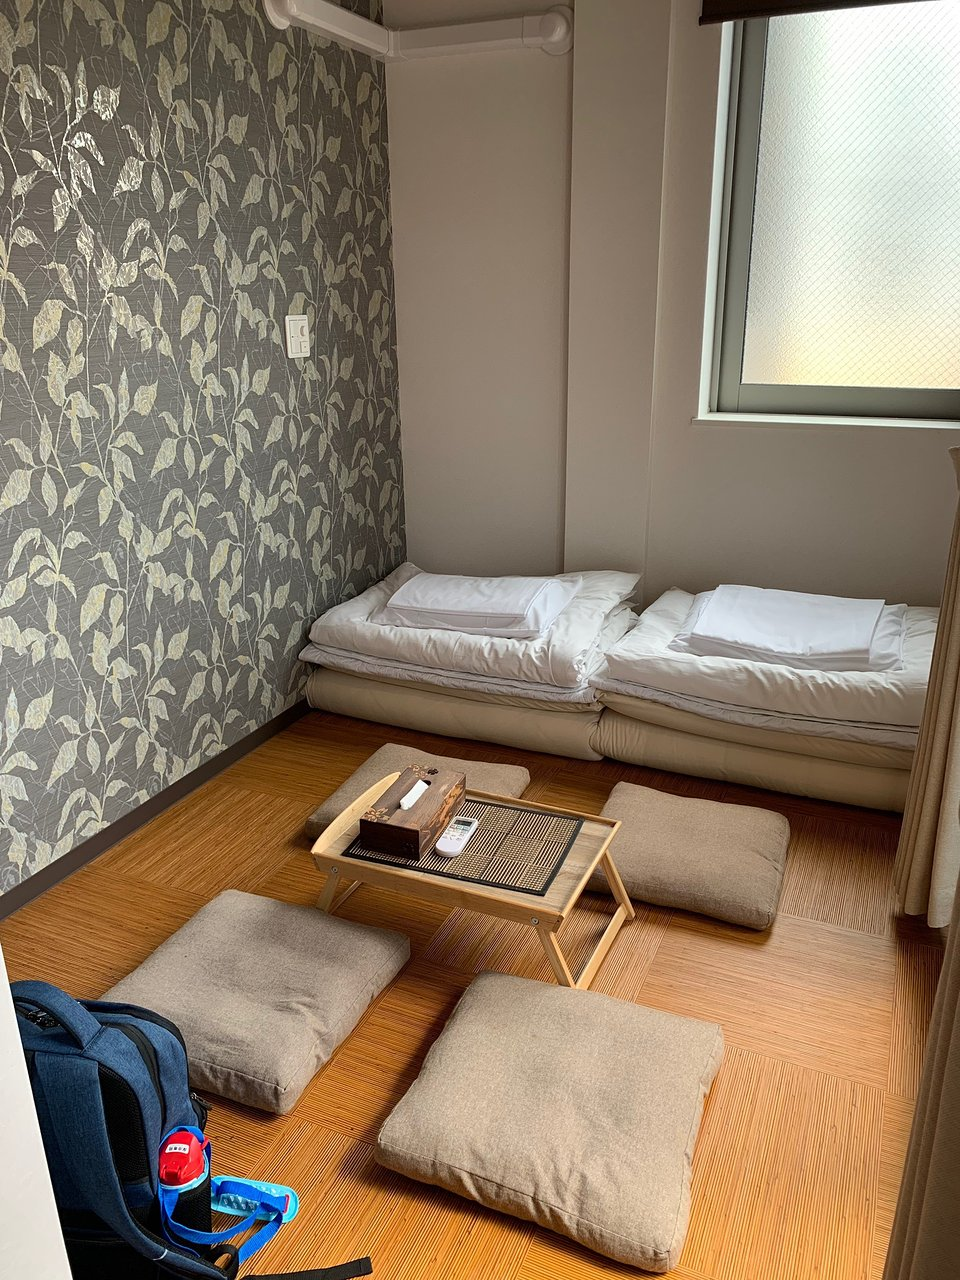 Poly Hostel Osaka Prices Japanese Guest House Reviews